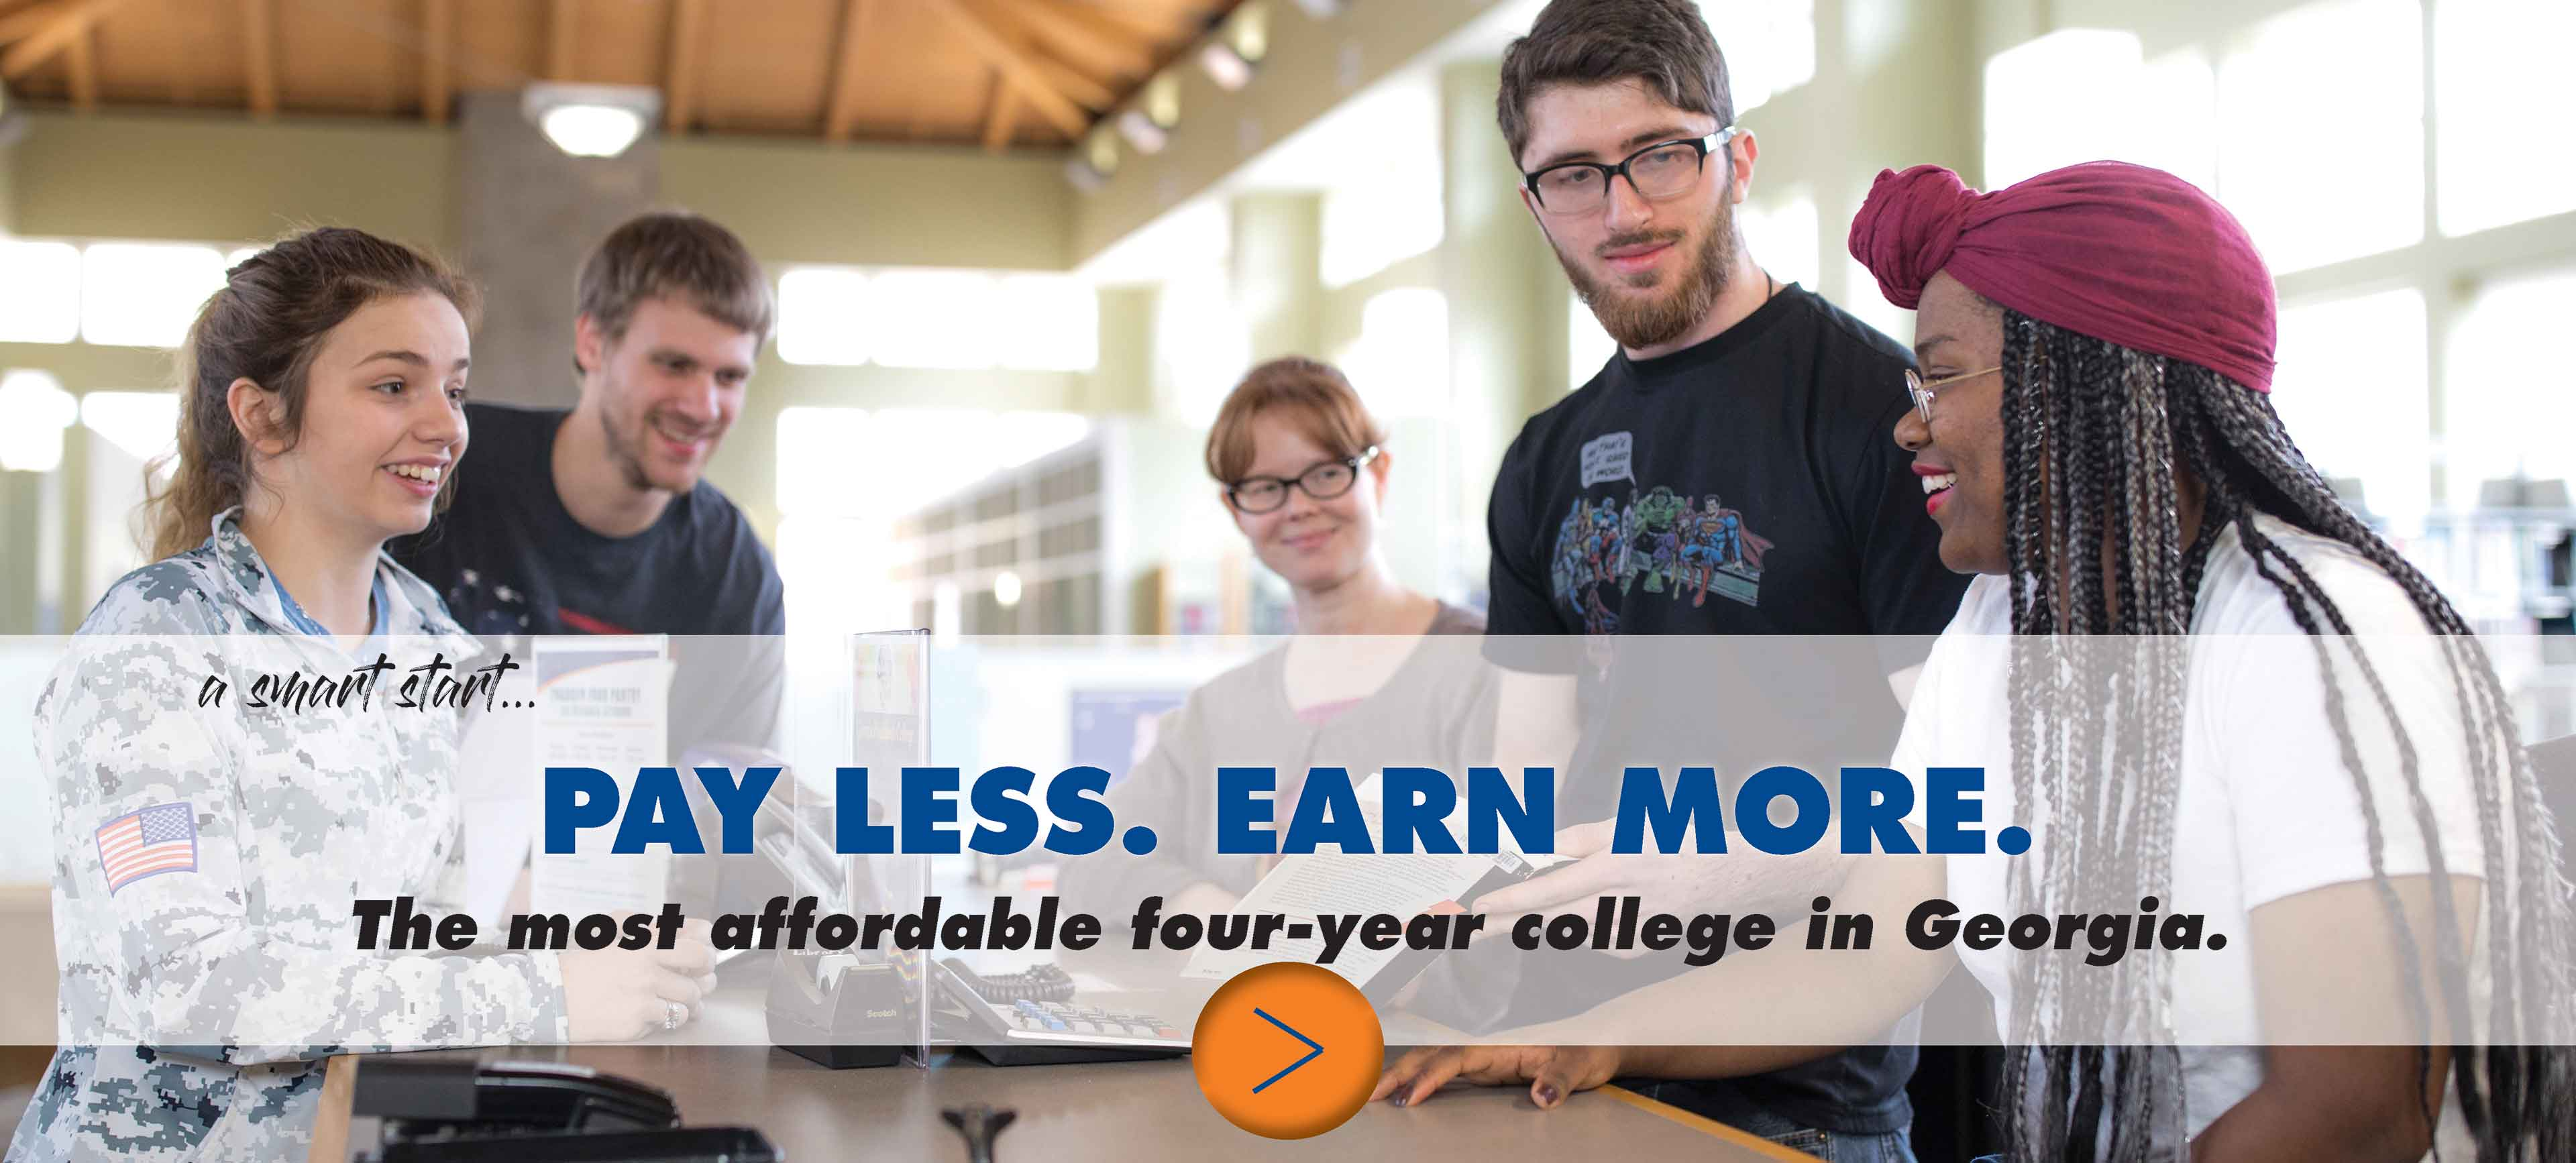 A smart start. Pay less. Earn more. The most affordable 4-year college in Georgia.